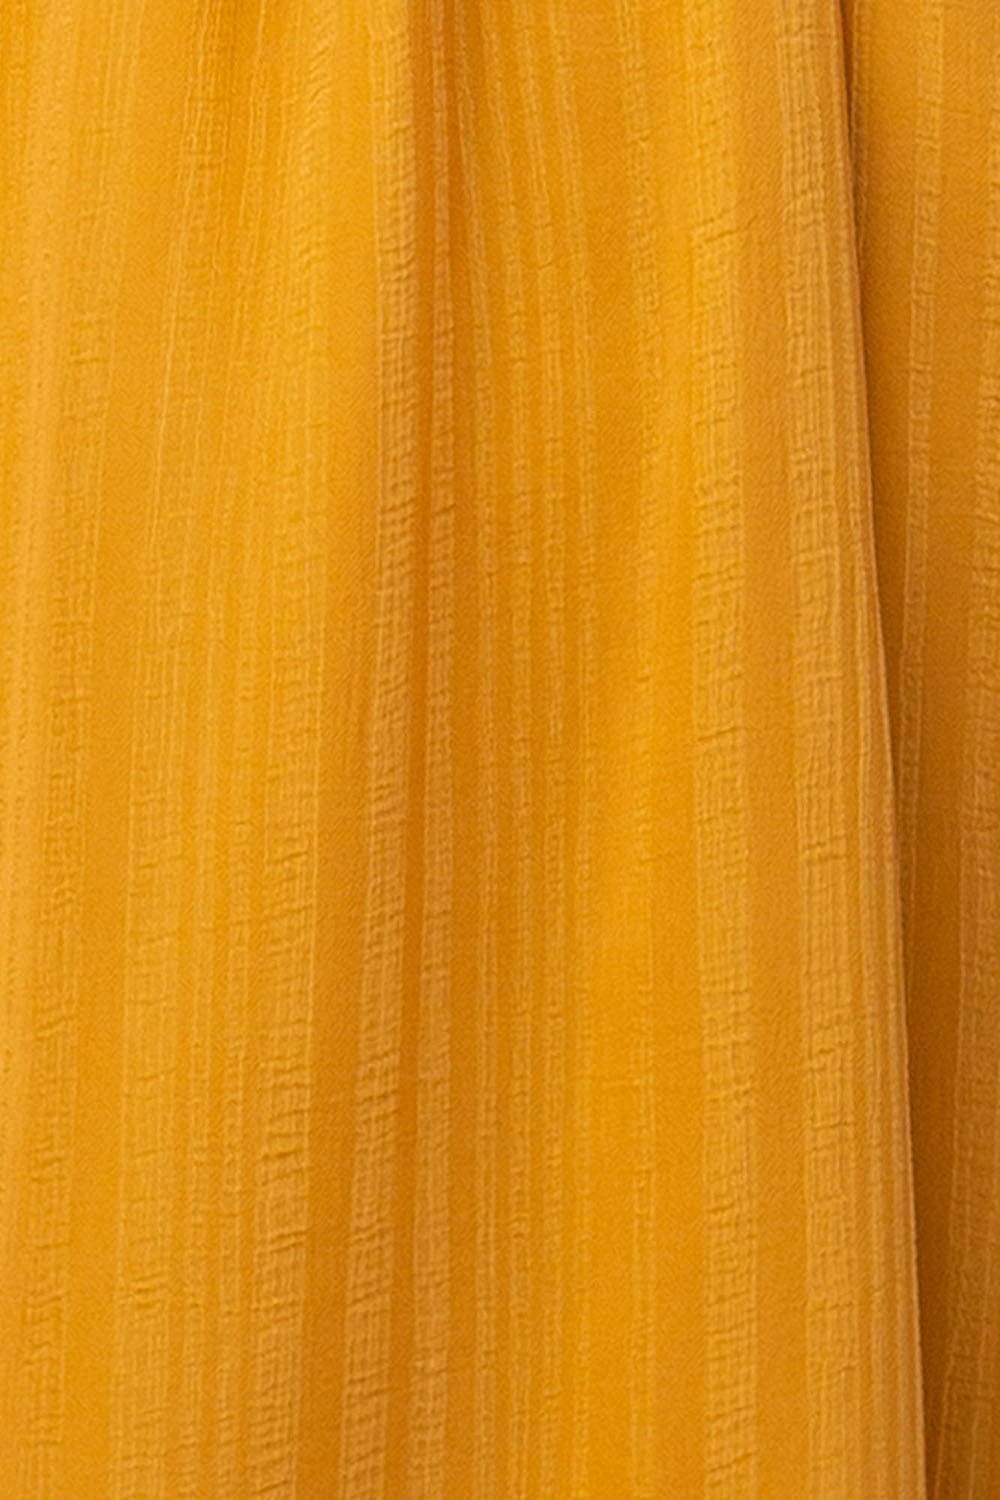 Alyssa Dress With U-Shape Metal Wire Detail In Mustard Siin Bees